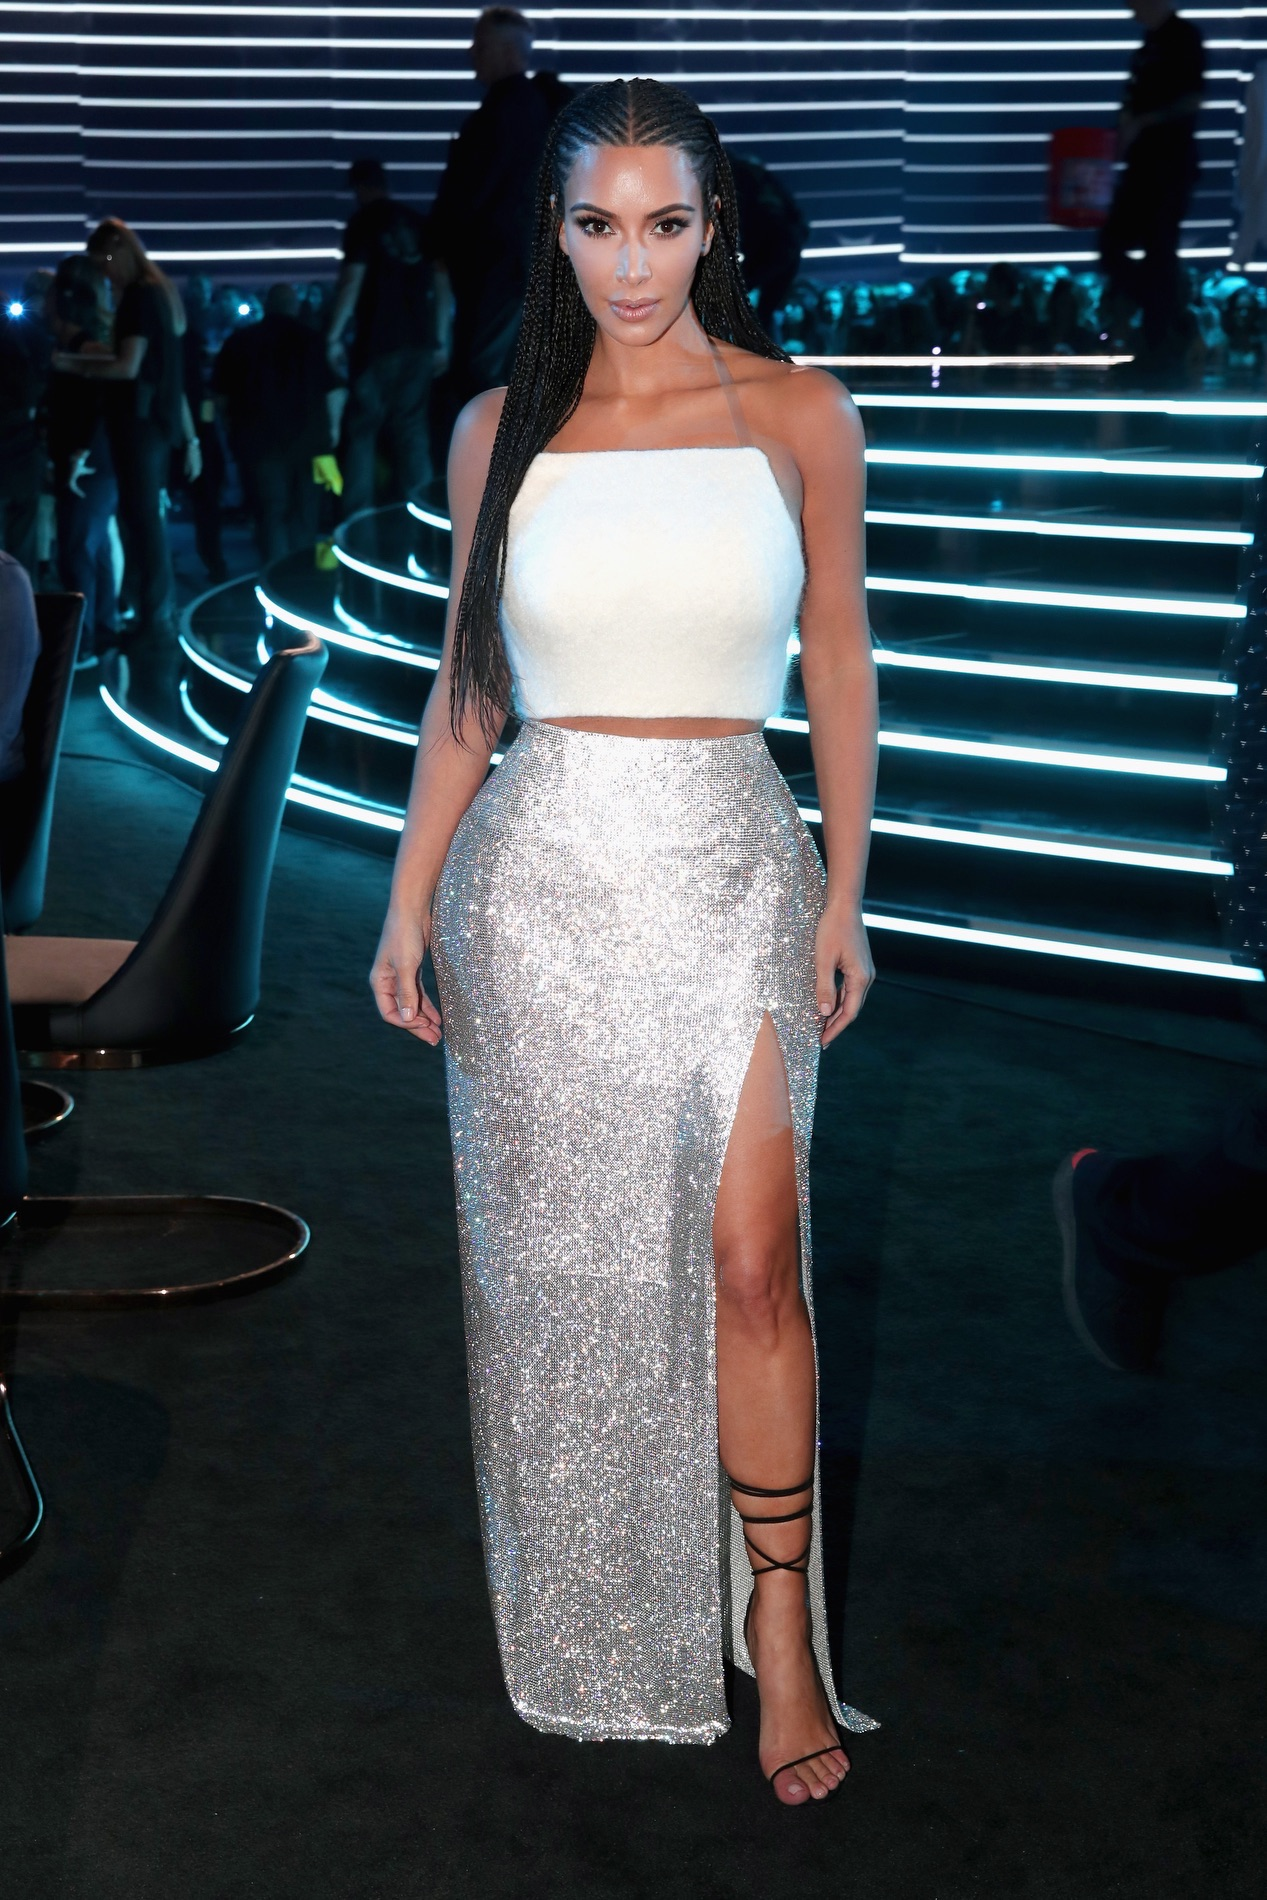 Kim Kardashian, Hollywood's Best Personal Brands by The Idea Boutique